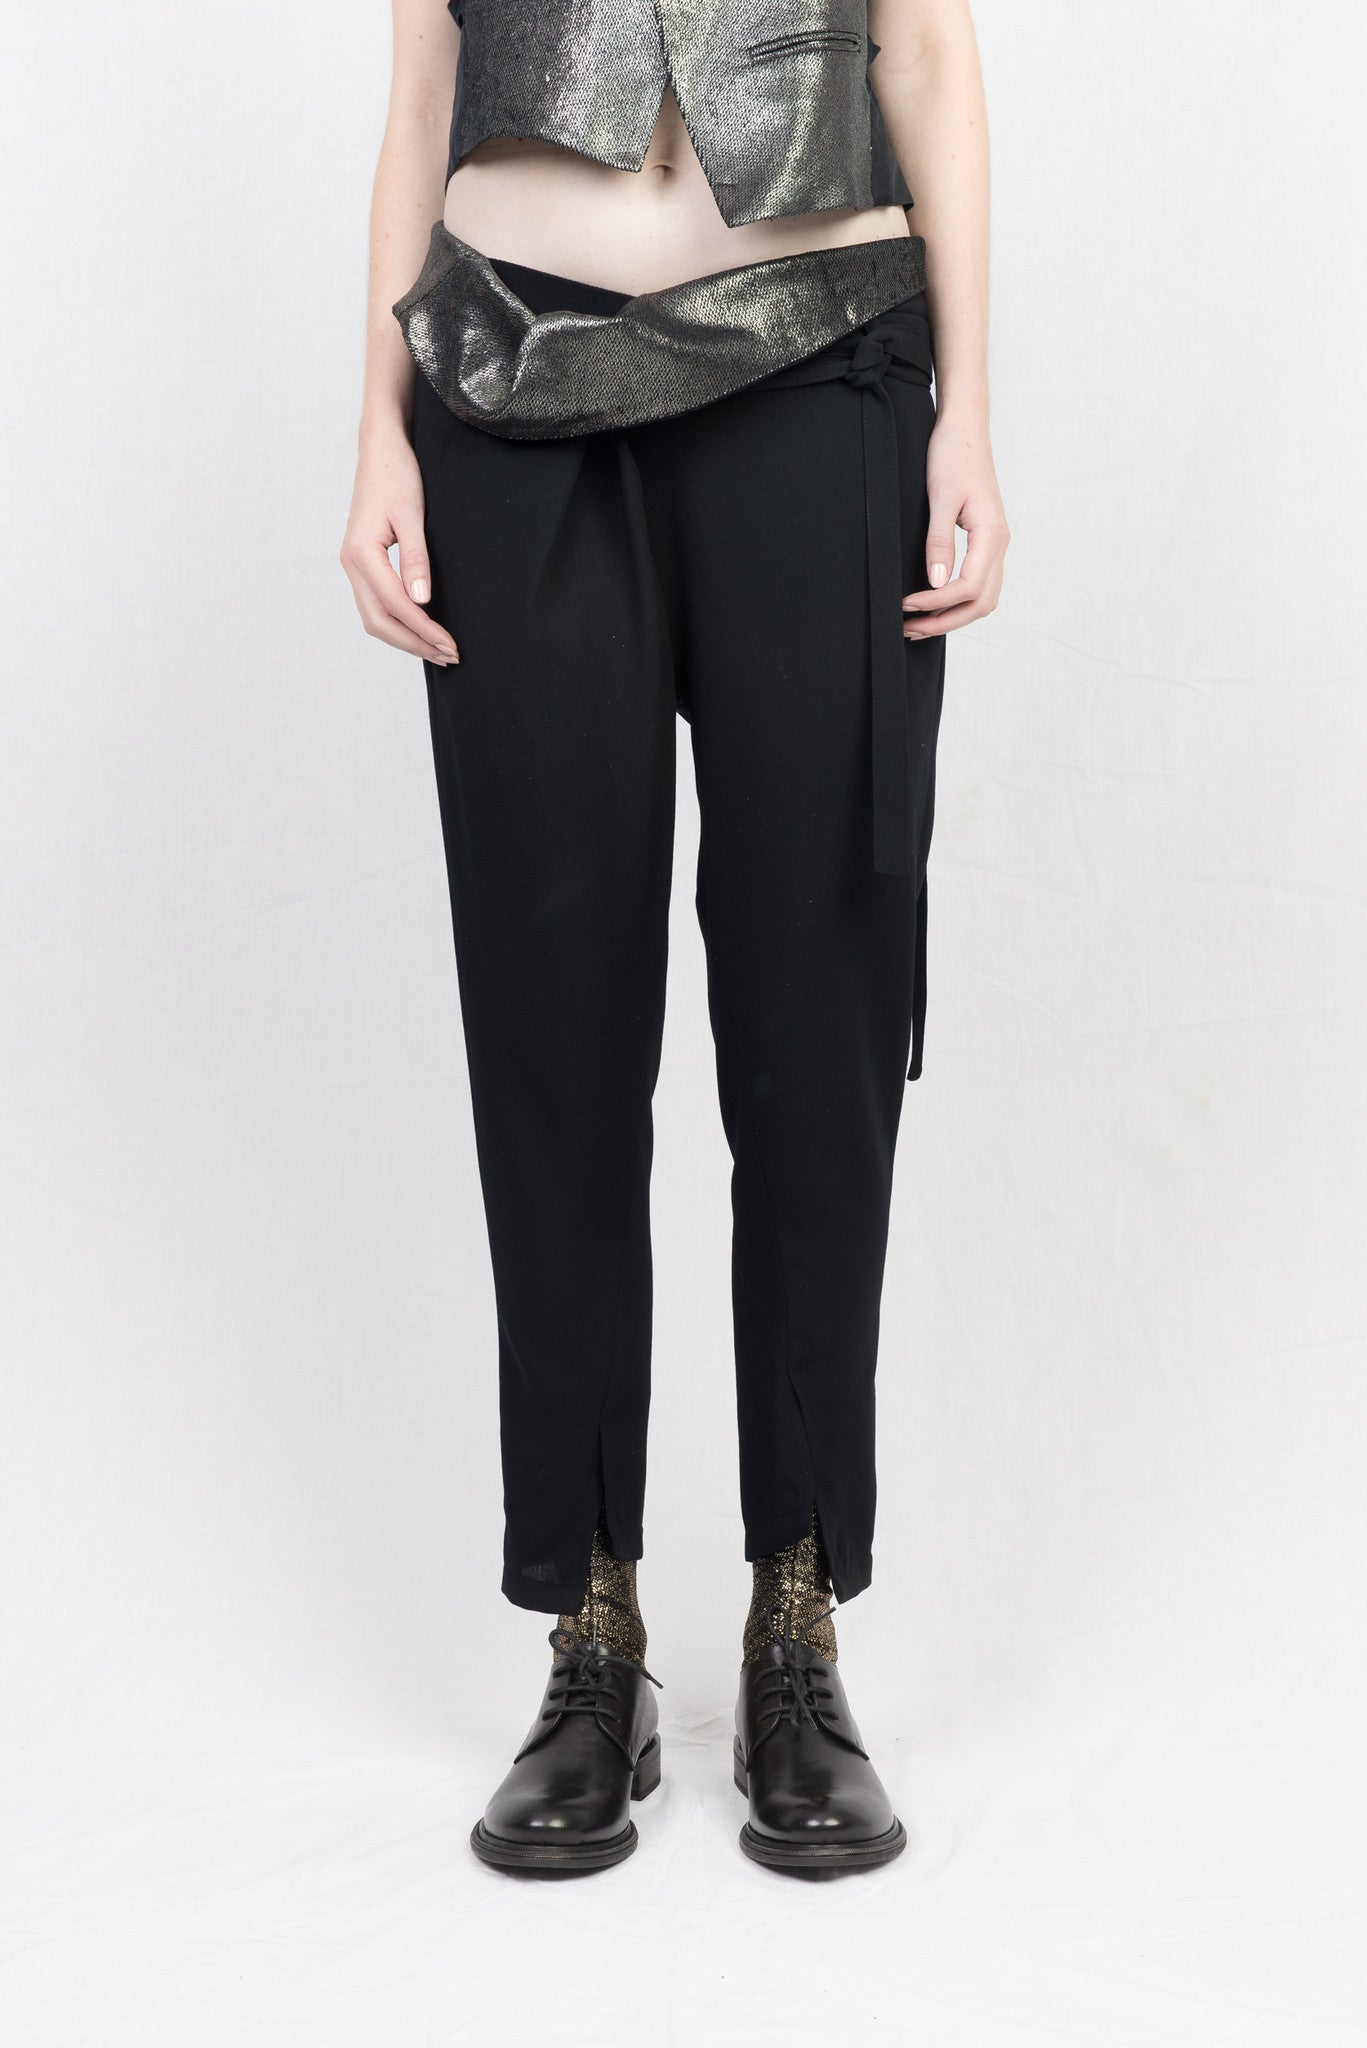 ANN DEMEULEMEESTER waldo black + solis gold trousers